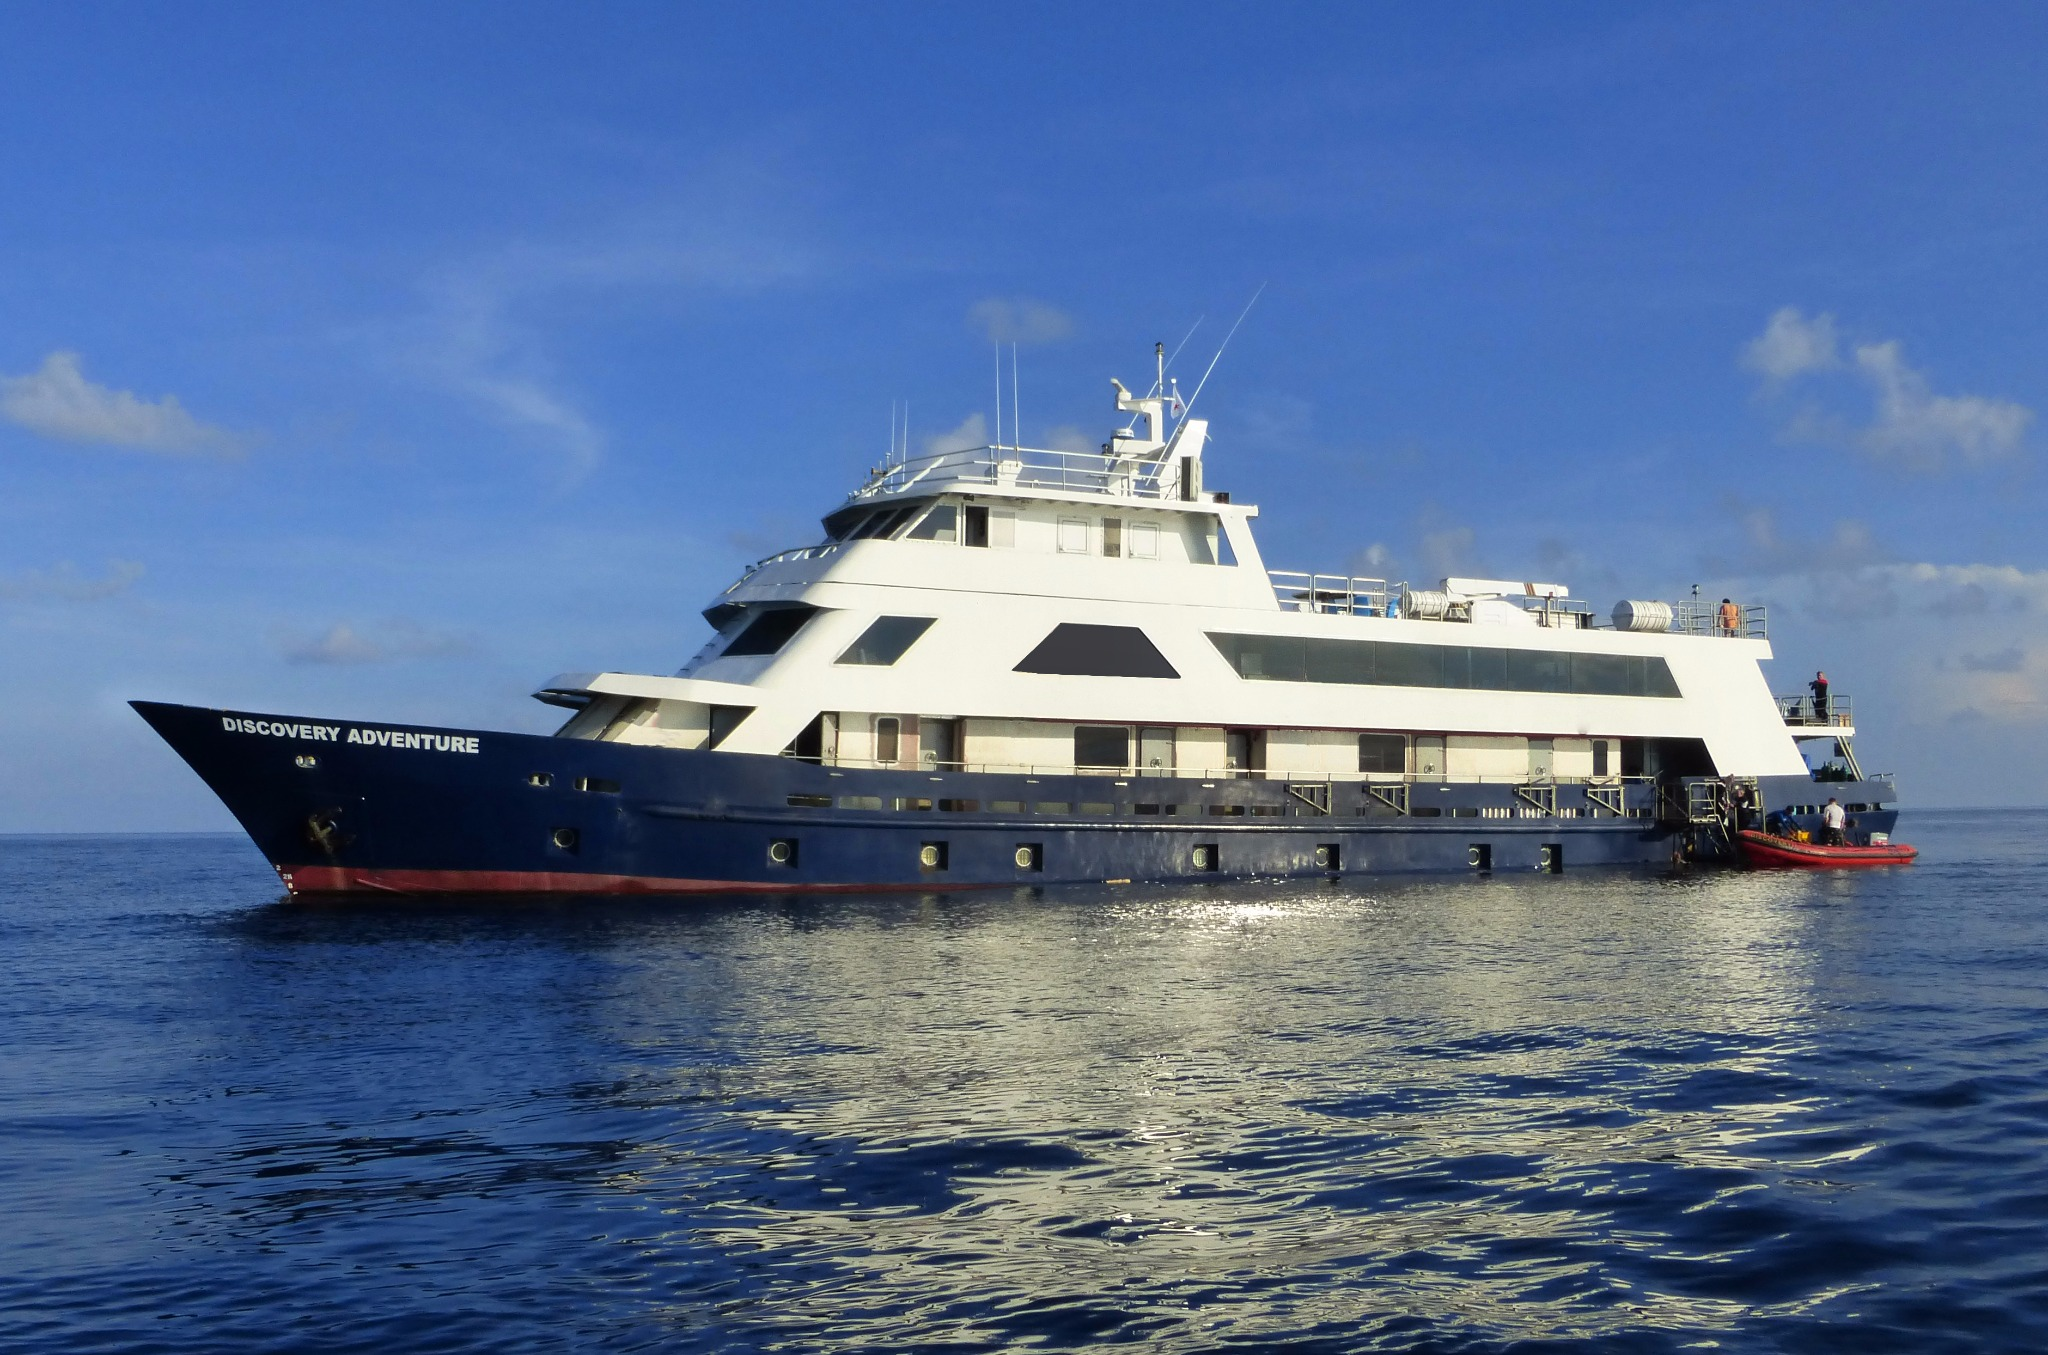 Discovery Adventure Liveaboard